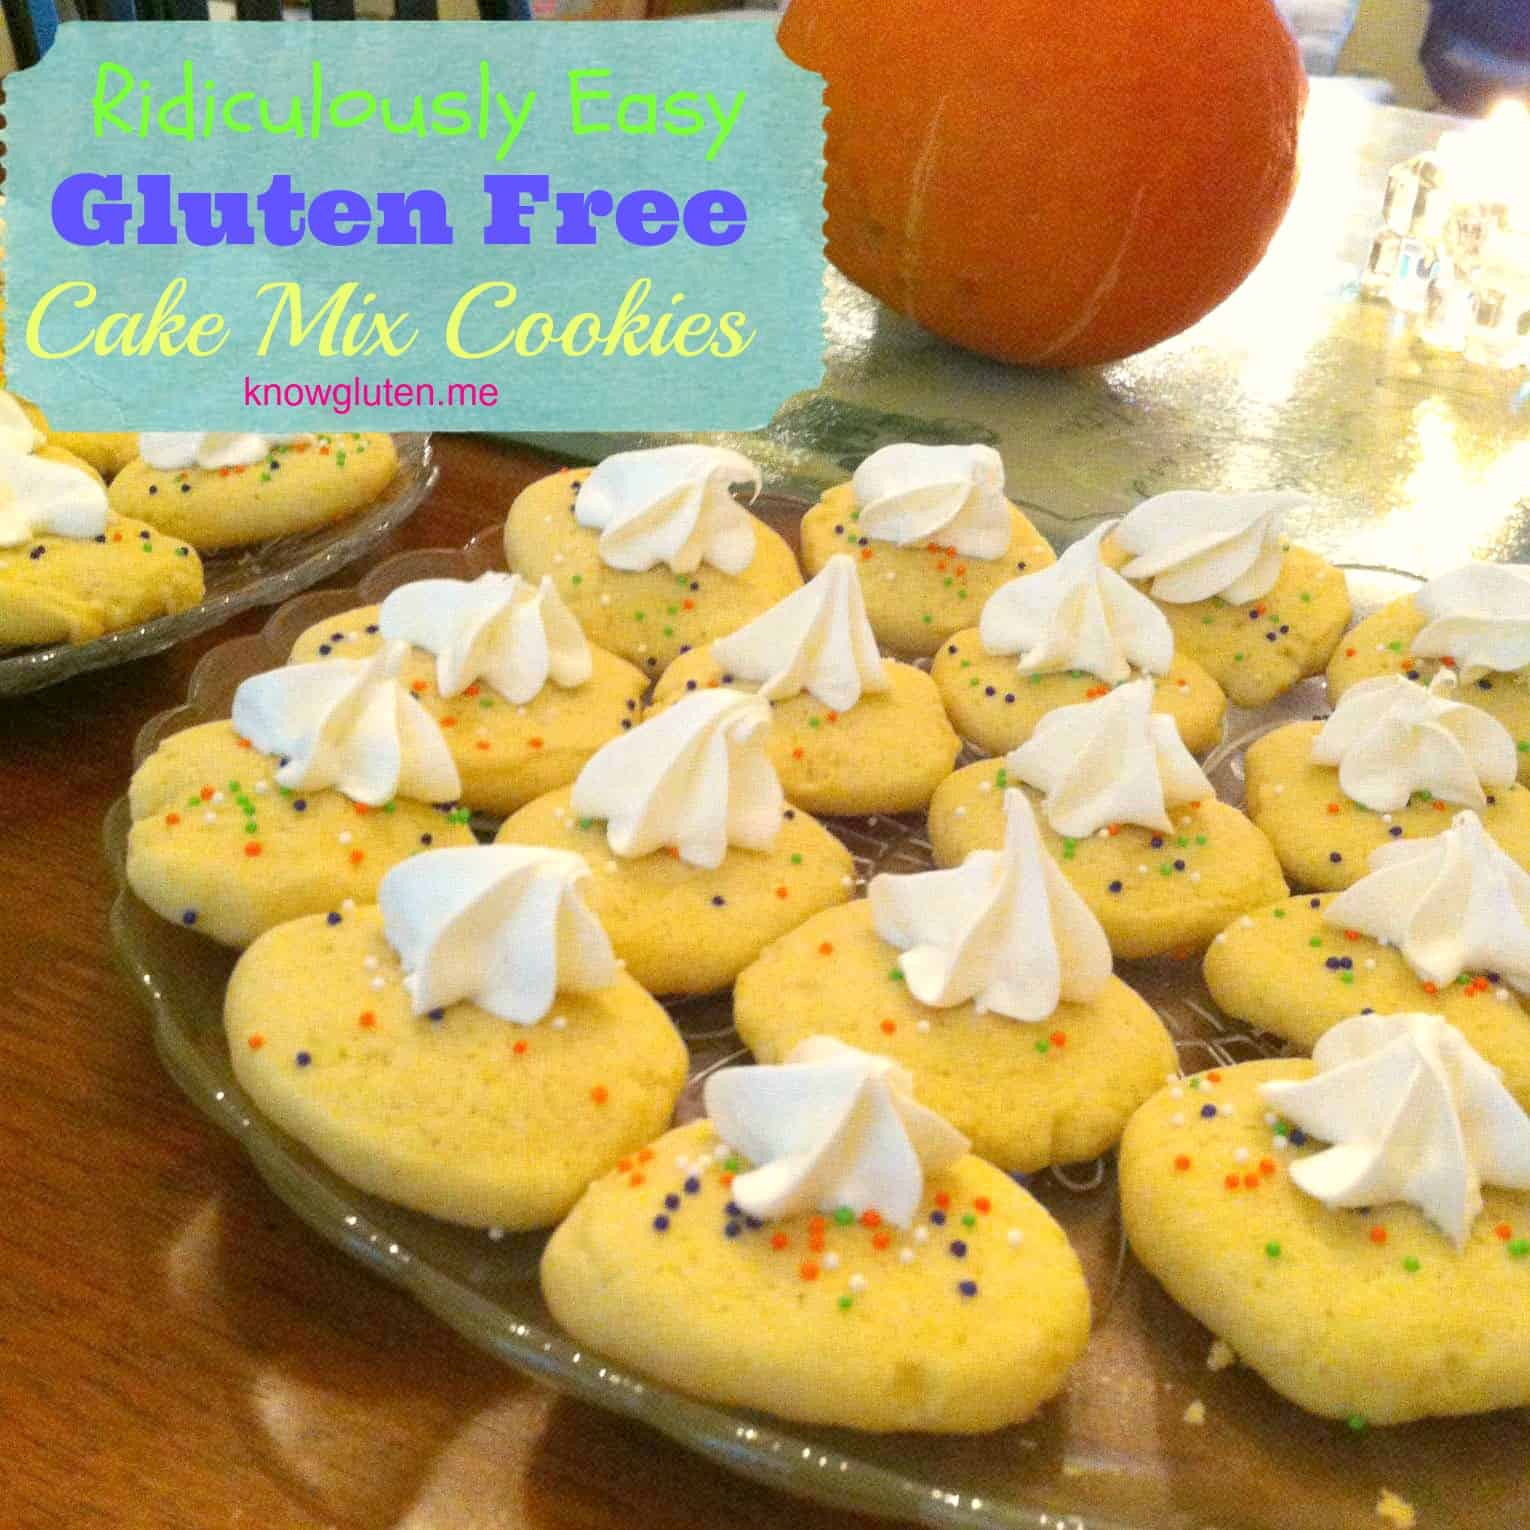 Ridiculously Easy Gluten Free Cake Mix Cookies